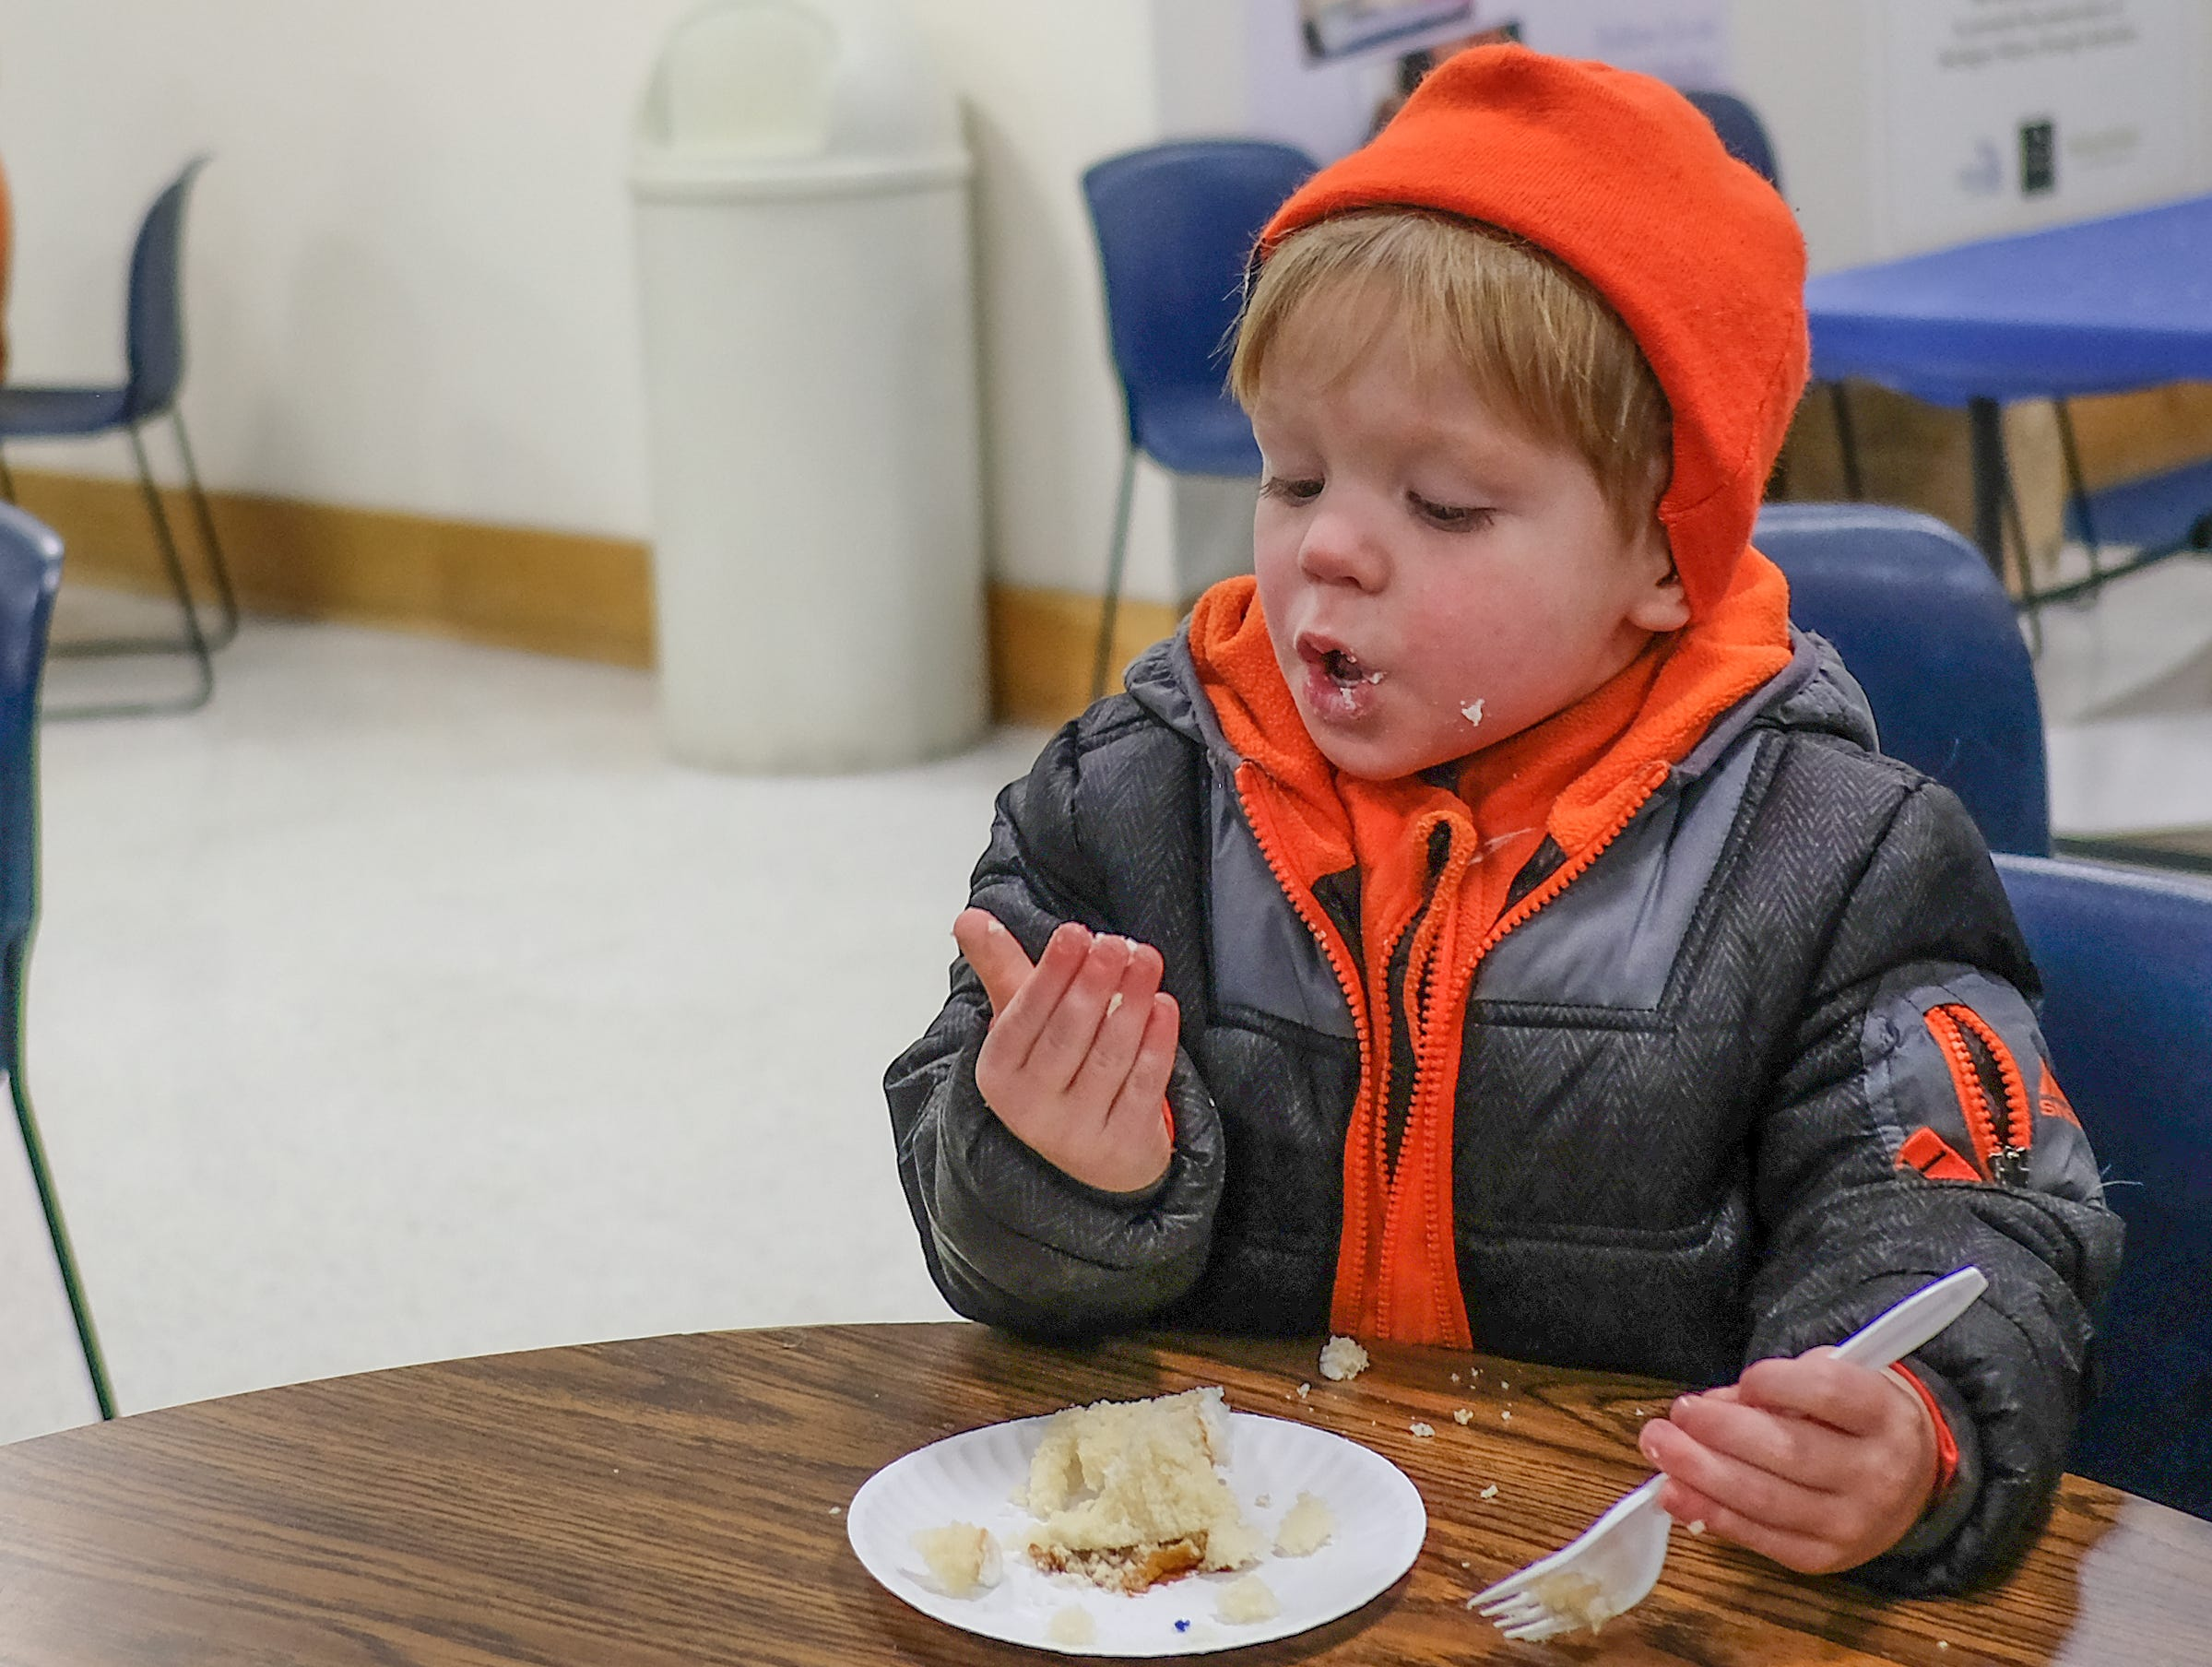 Finn Vargo, 2, from Albion enjoys the cake at the Welcome to Statehood Day 2019 event at the Michigan Library and Historical Center Saturday, Jan. 26, 2019. Michigan became a state on this day in 1837.